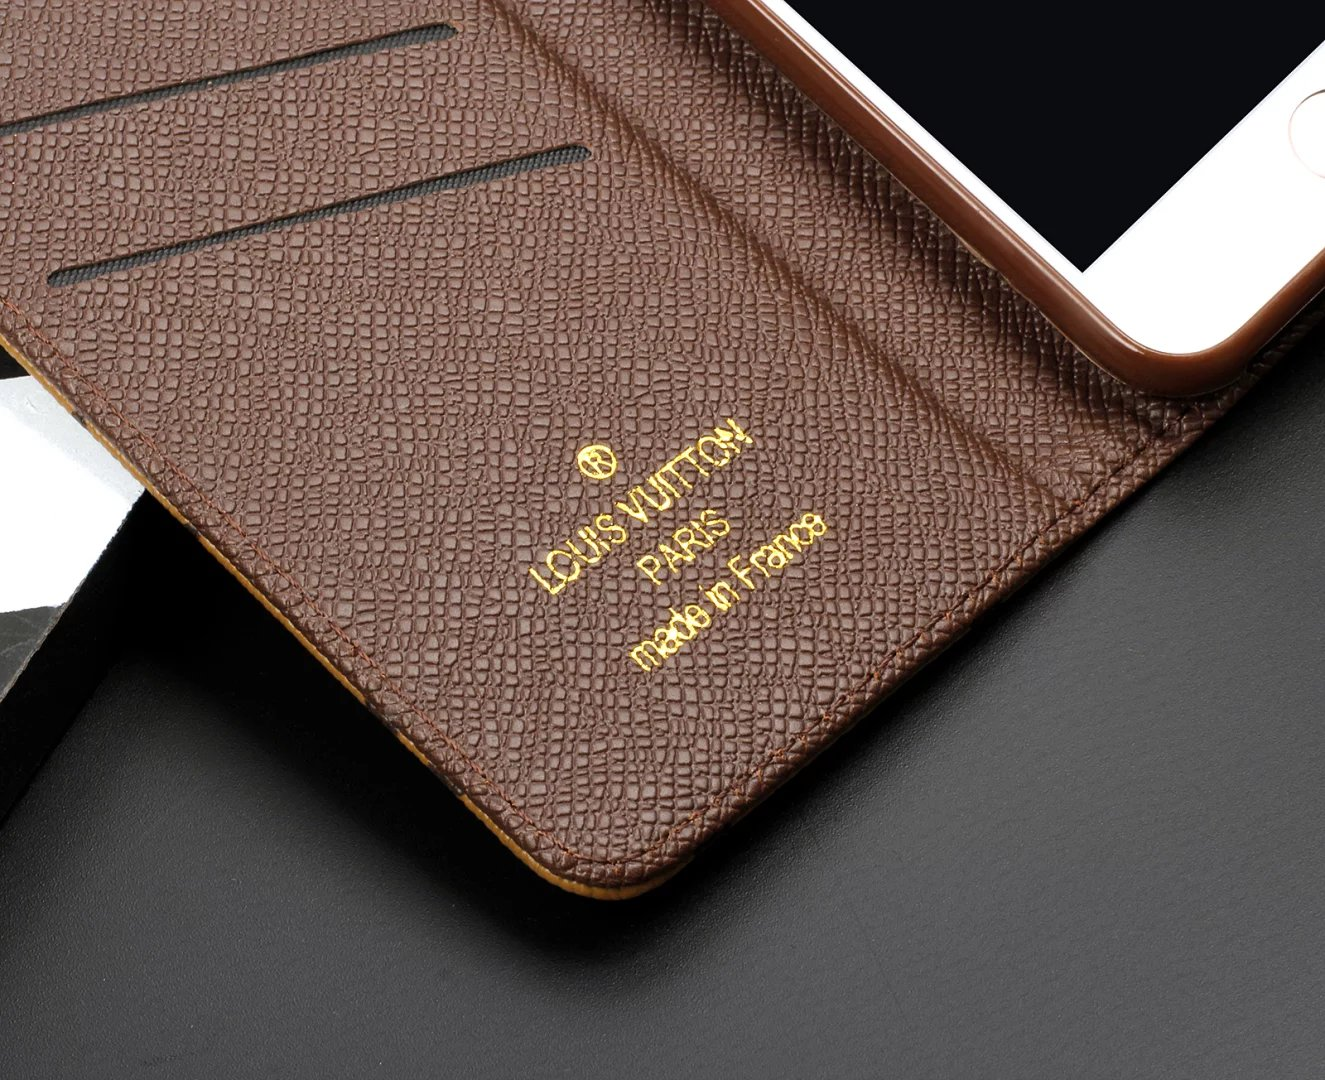 handyhülle iphone selbst gestalten foto iphone hülle Louis Vuitton iphone7 Plus hülle piphone 7 Plus iphone marken hüllen ca7 iphone 7 Plus apple handyhülle iphone 7 Plus  iphone 7 Plus hülle schwarz smartphone cover 7lbst gestalten